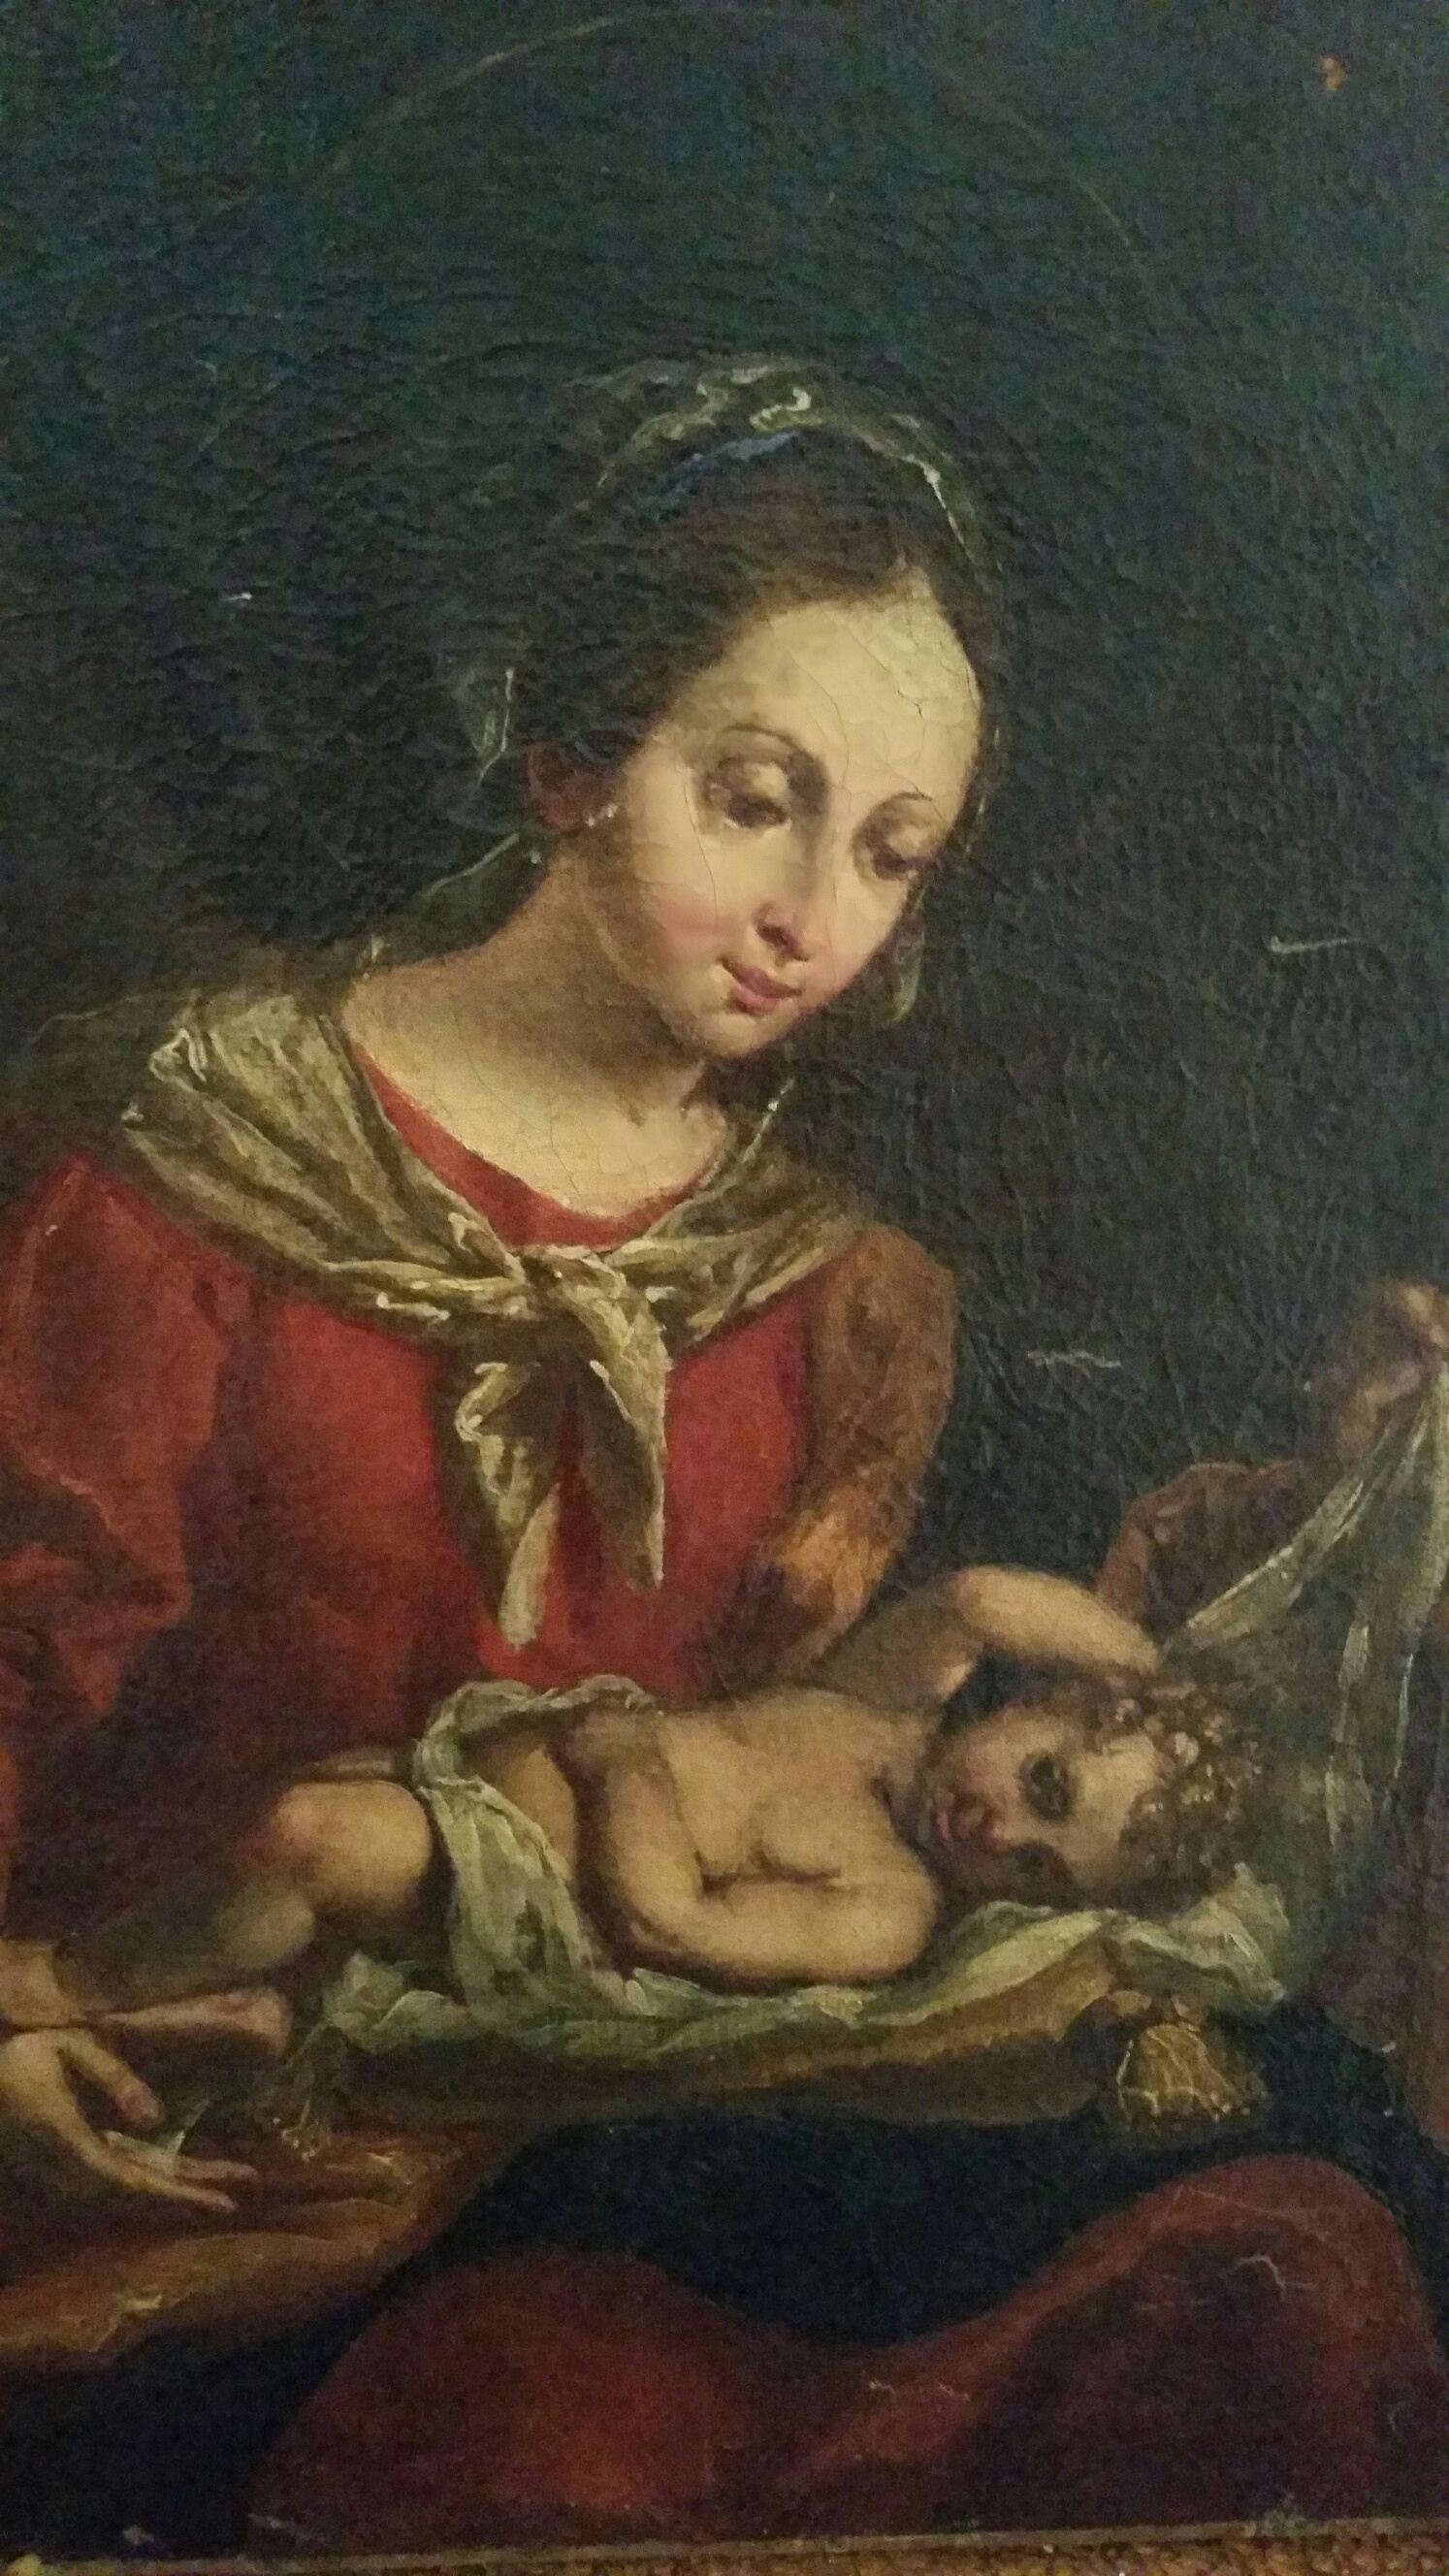 Madonna with Baby 150 yr old oil painting.20150607_141945_resized.jpg